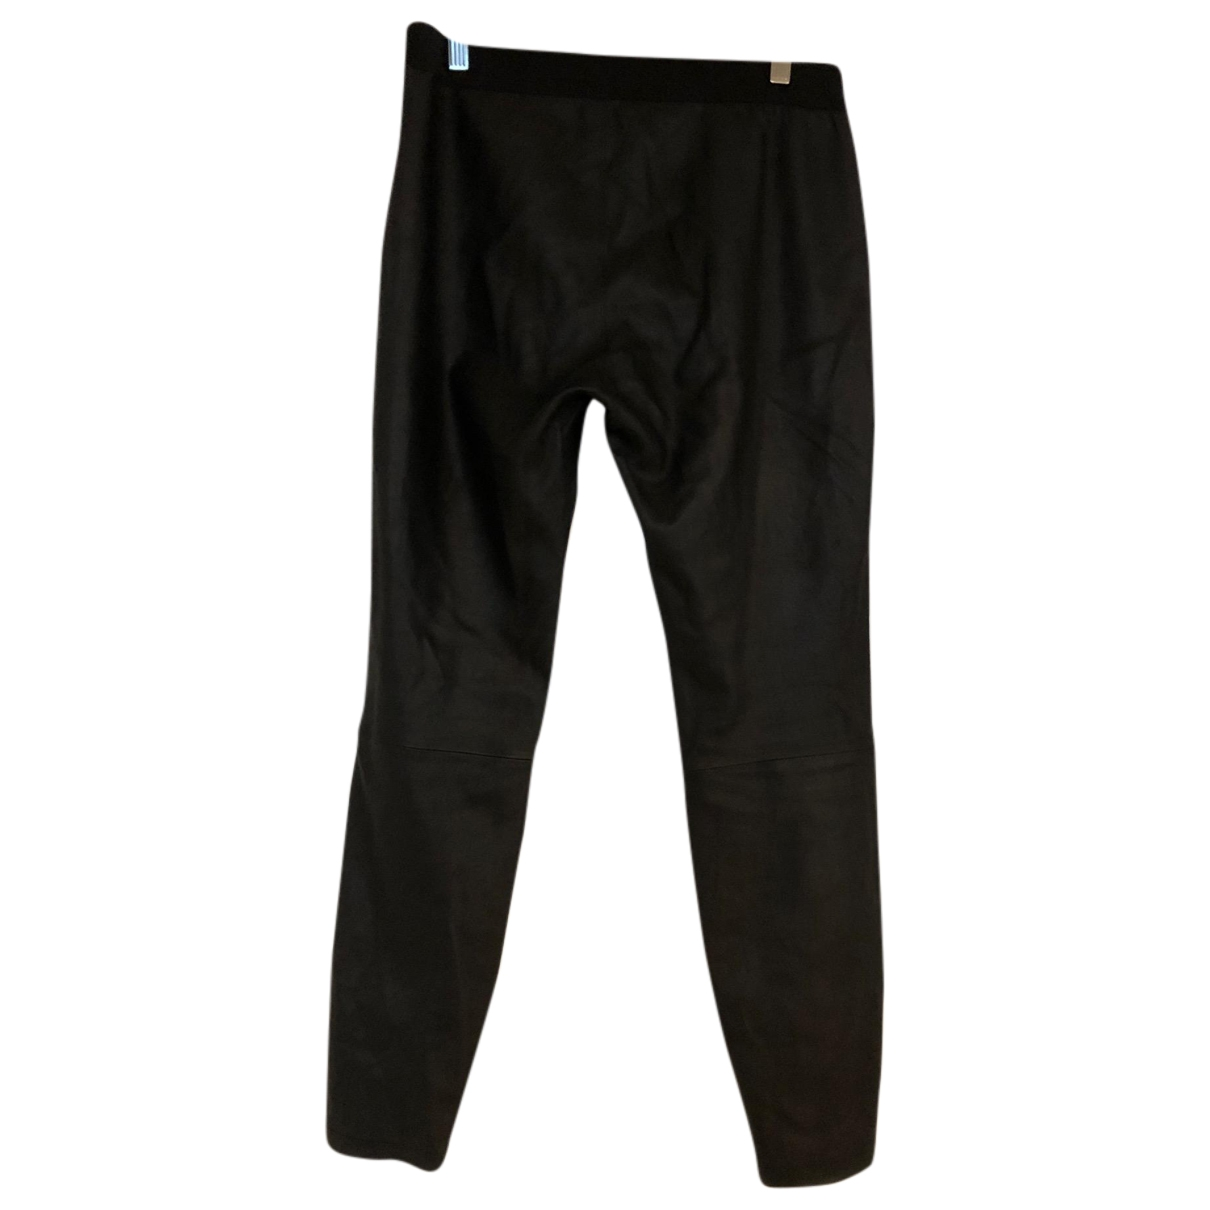 Reiss \N Black Leather Trousers for Women 14 UK